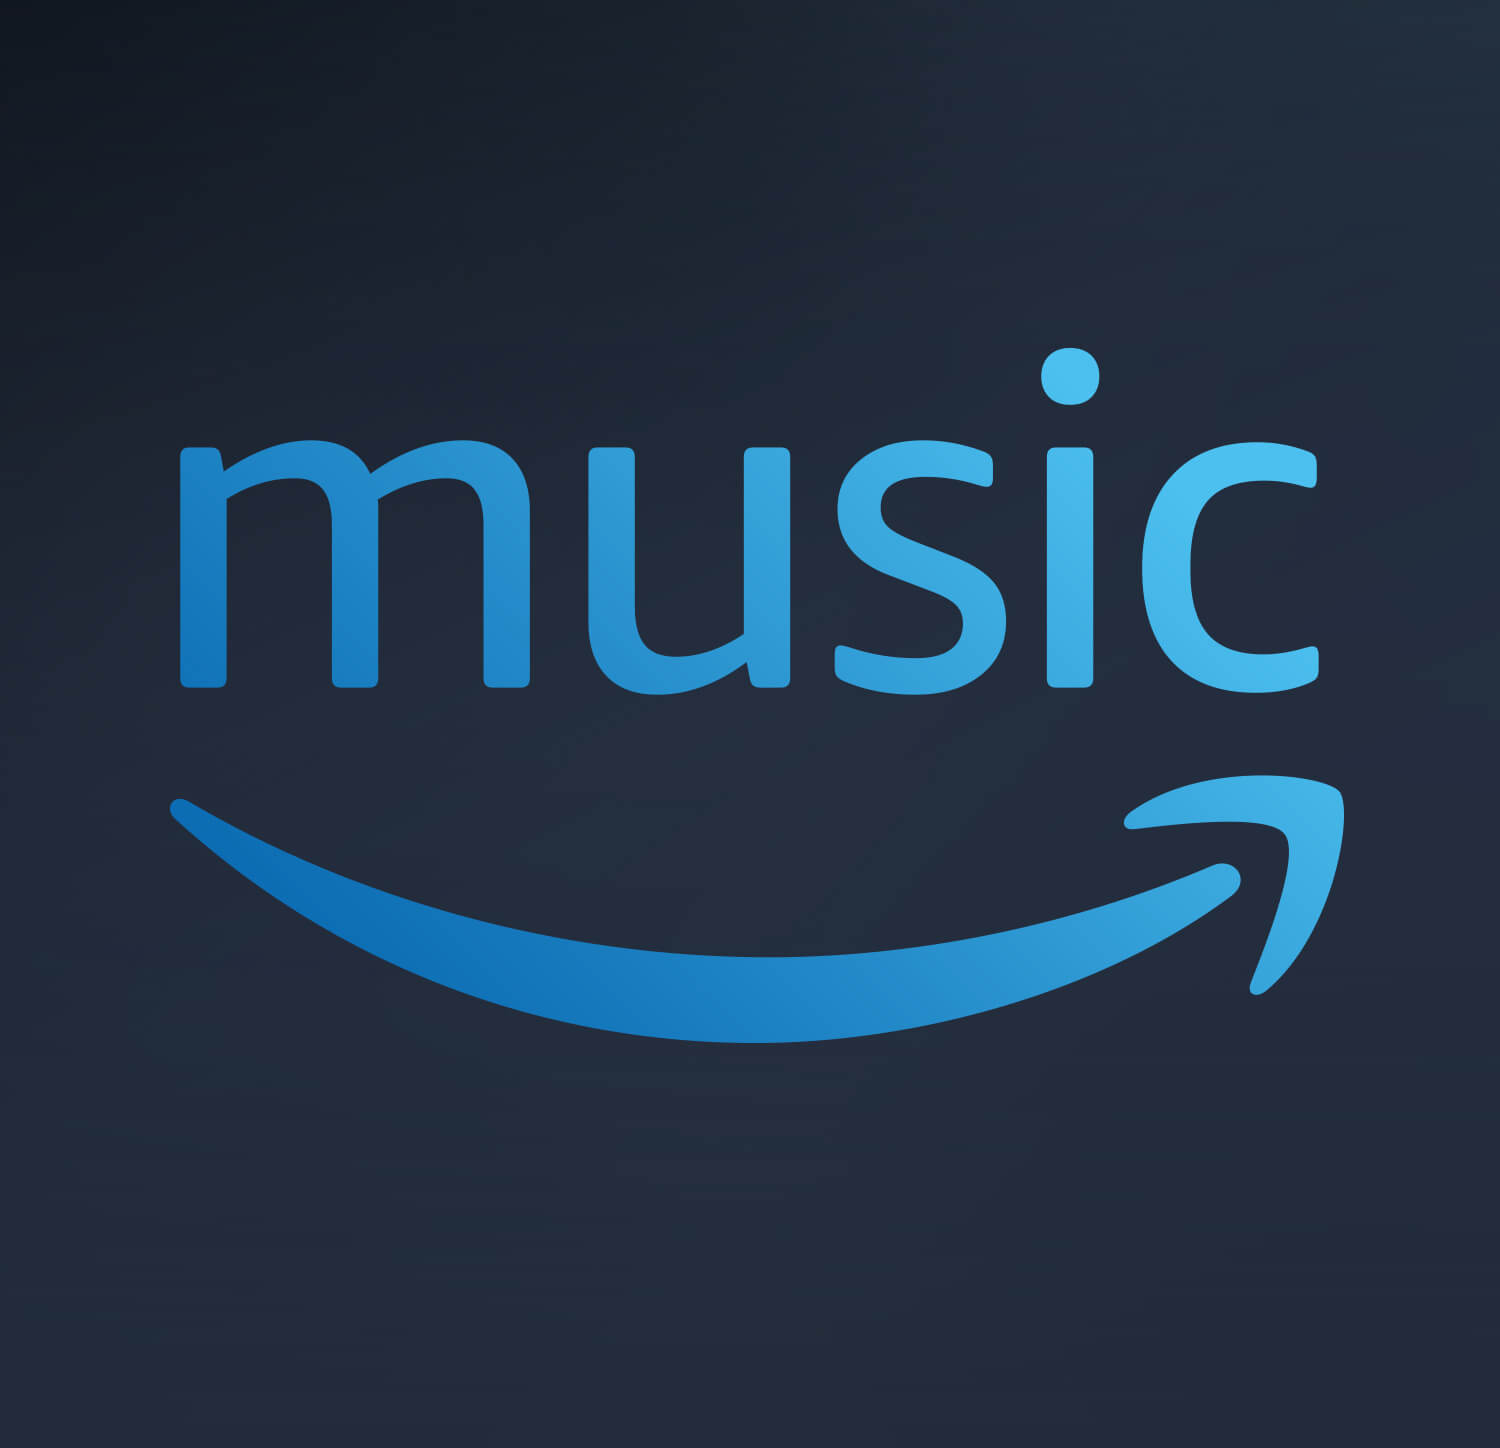 Free Music HD trial for 90 days (after that, £14.99/month)